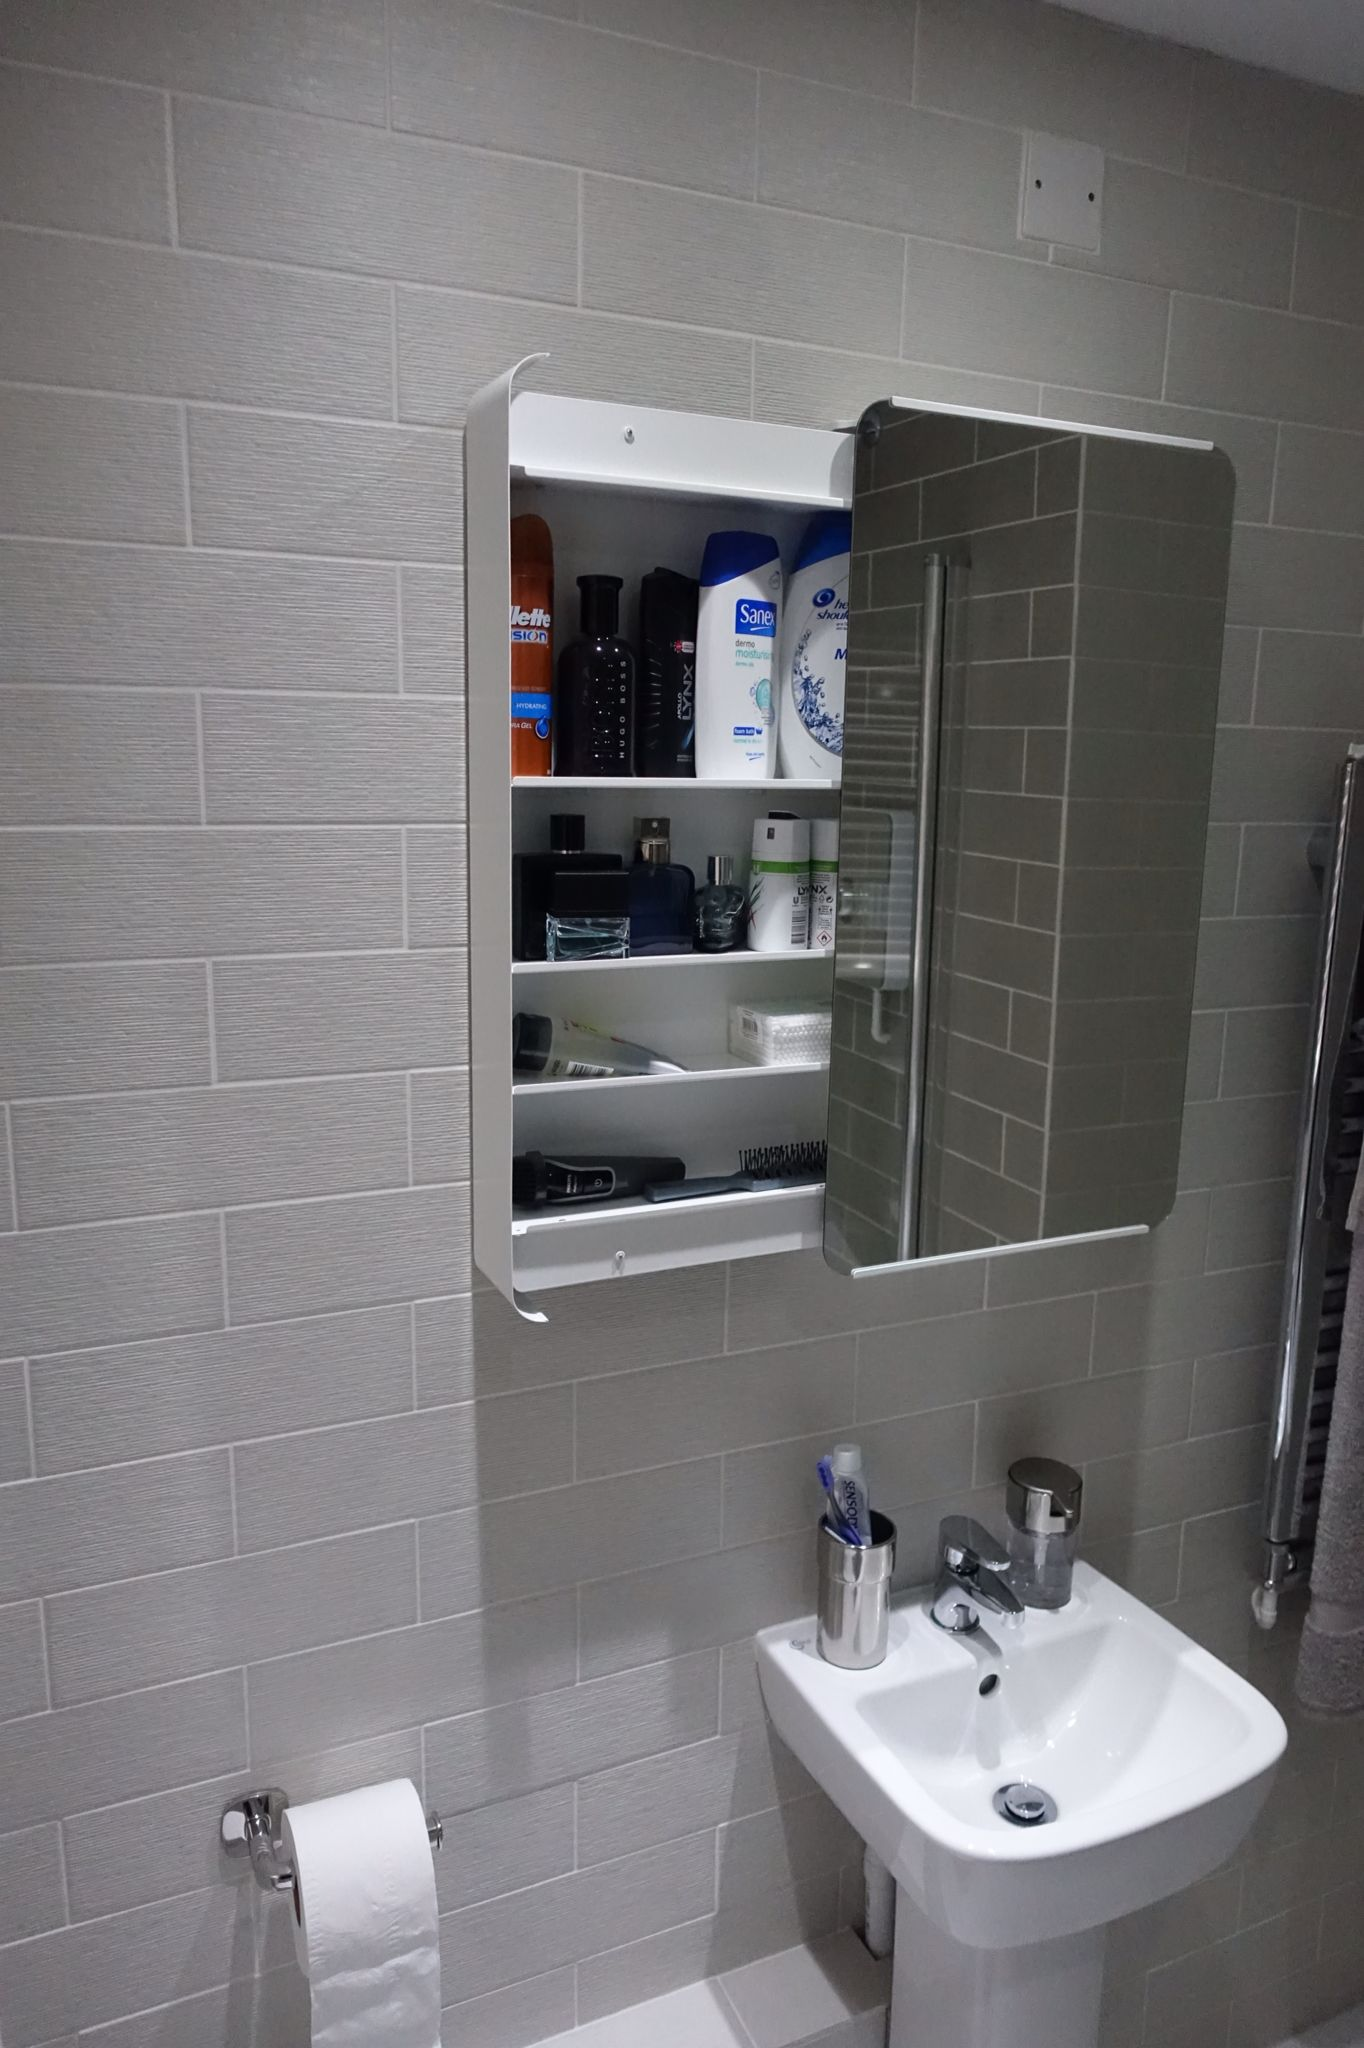 The Bathroom Cabinet Was Purchased From Ikea (brickan Mirror Cabinet) It's  A Great Design